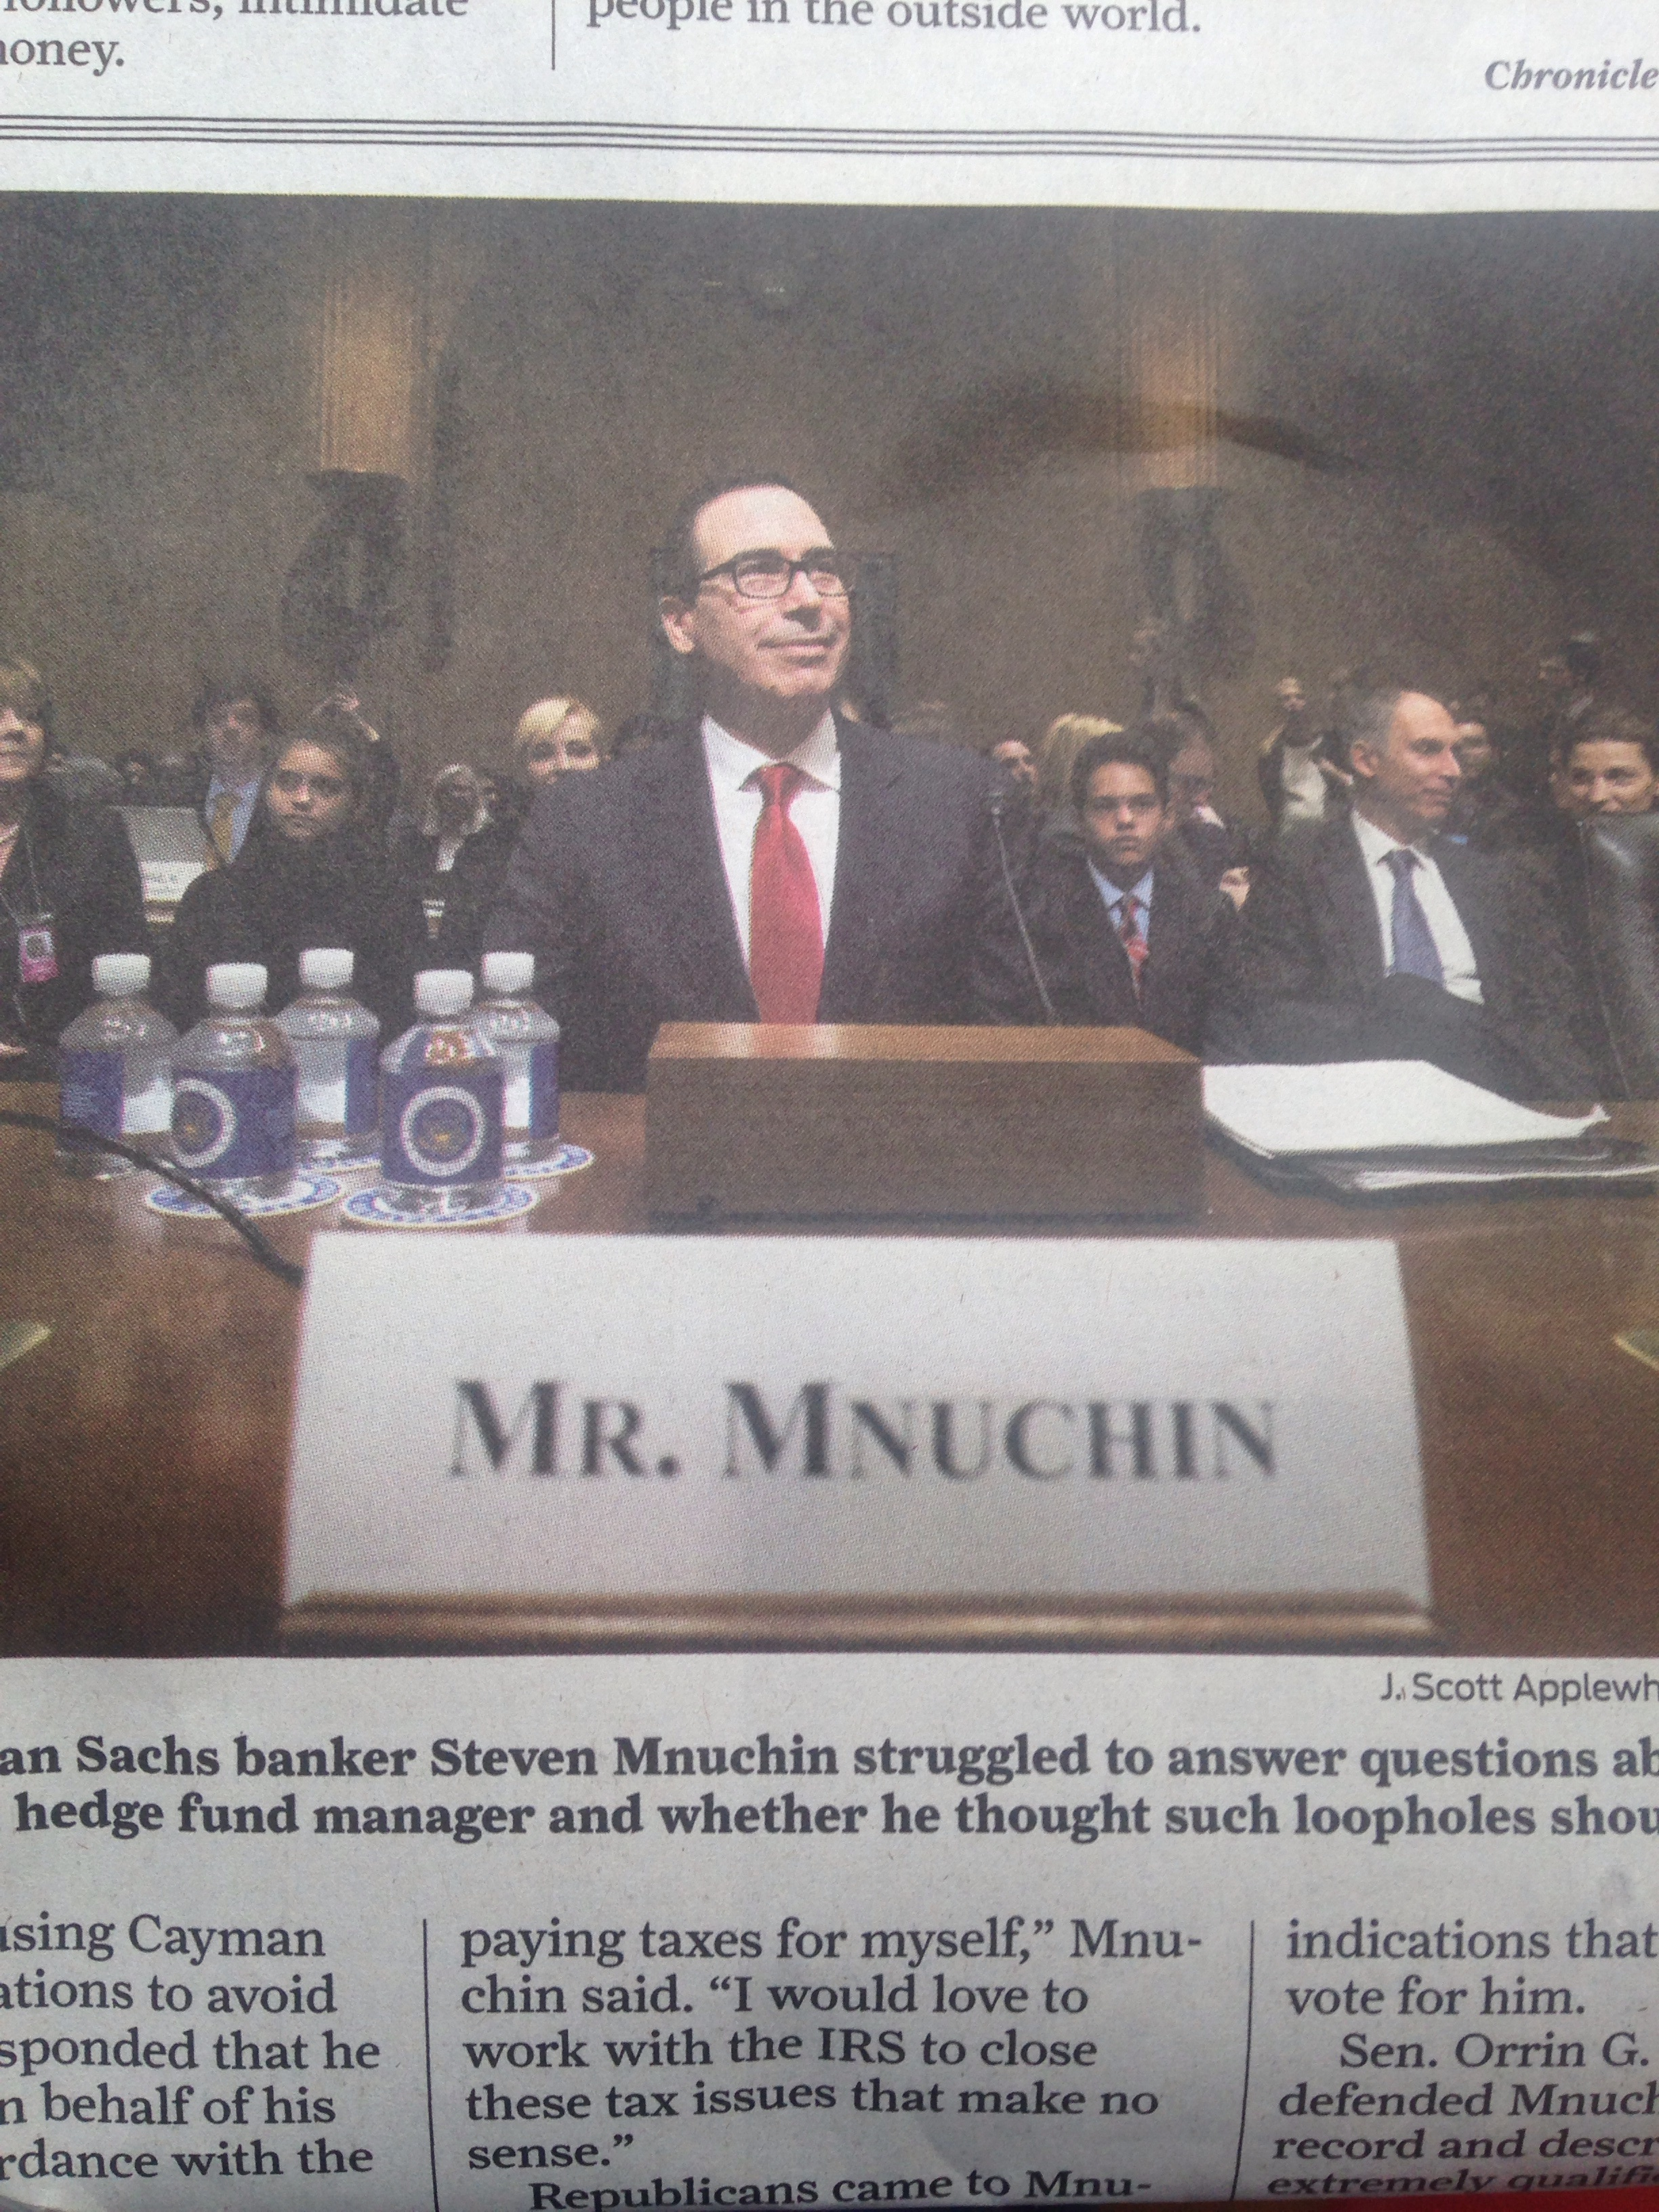 Steven Mnuchin, former Goldman Sachs partner and hedge fund manager, nominee for Treasury Secretary of the United States, January 19, 2017.